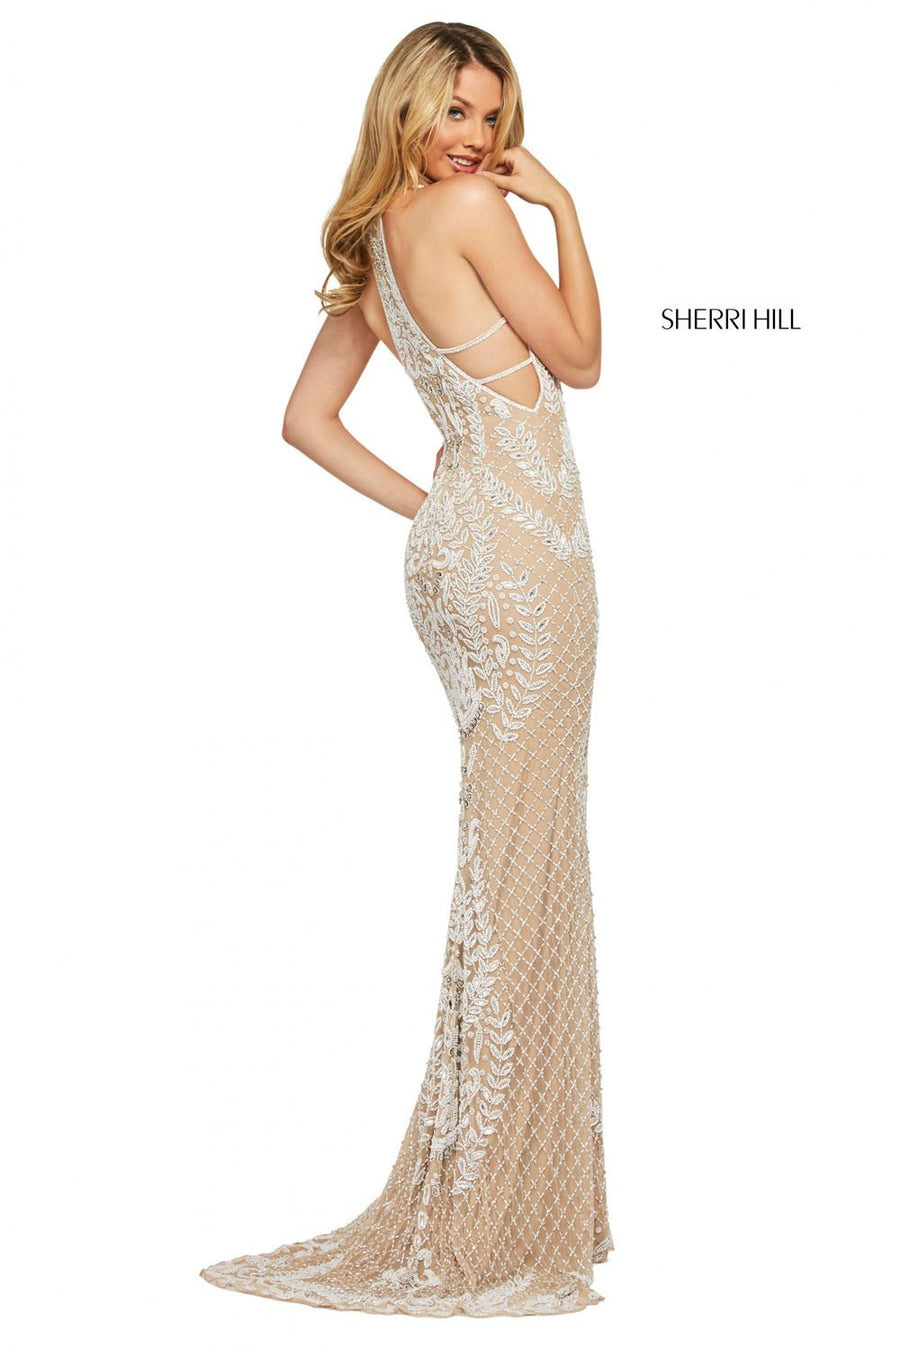 Sherri Hill 53439 prom dress images.  Sherri Hill 53439 is available in these colors: Nude Ivory, Teal, Periwinkle Pink, Aqua Pink, Periwinkle, Yellow, Nude Aqua, Ivory.